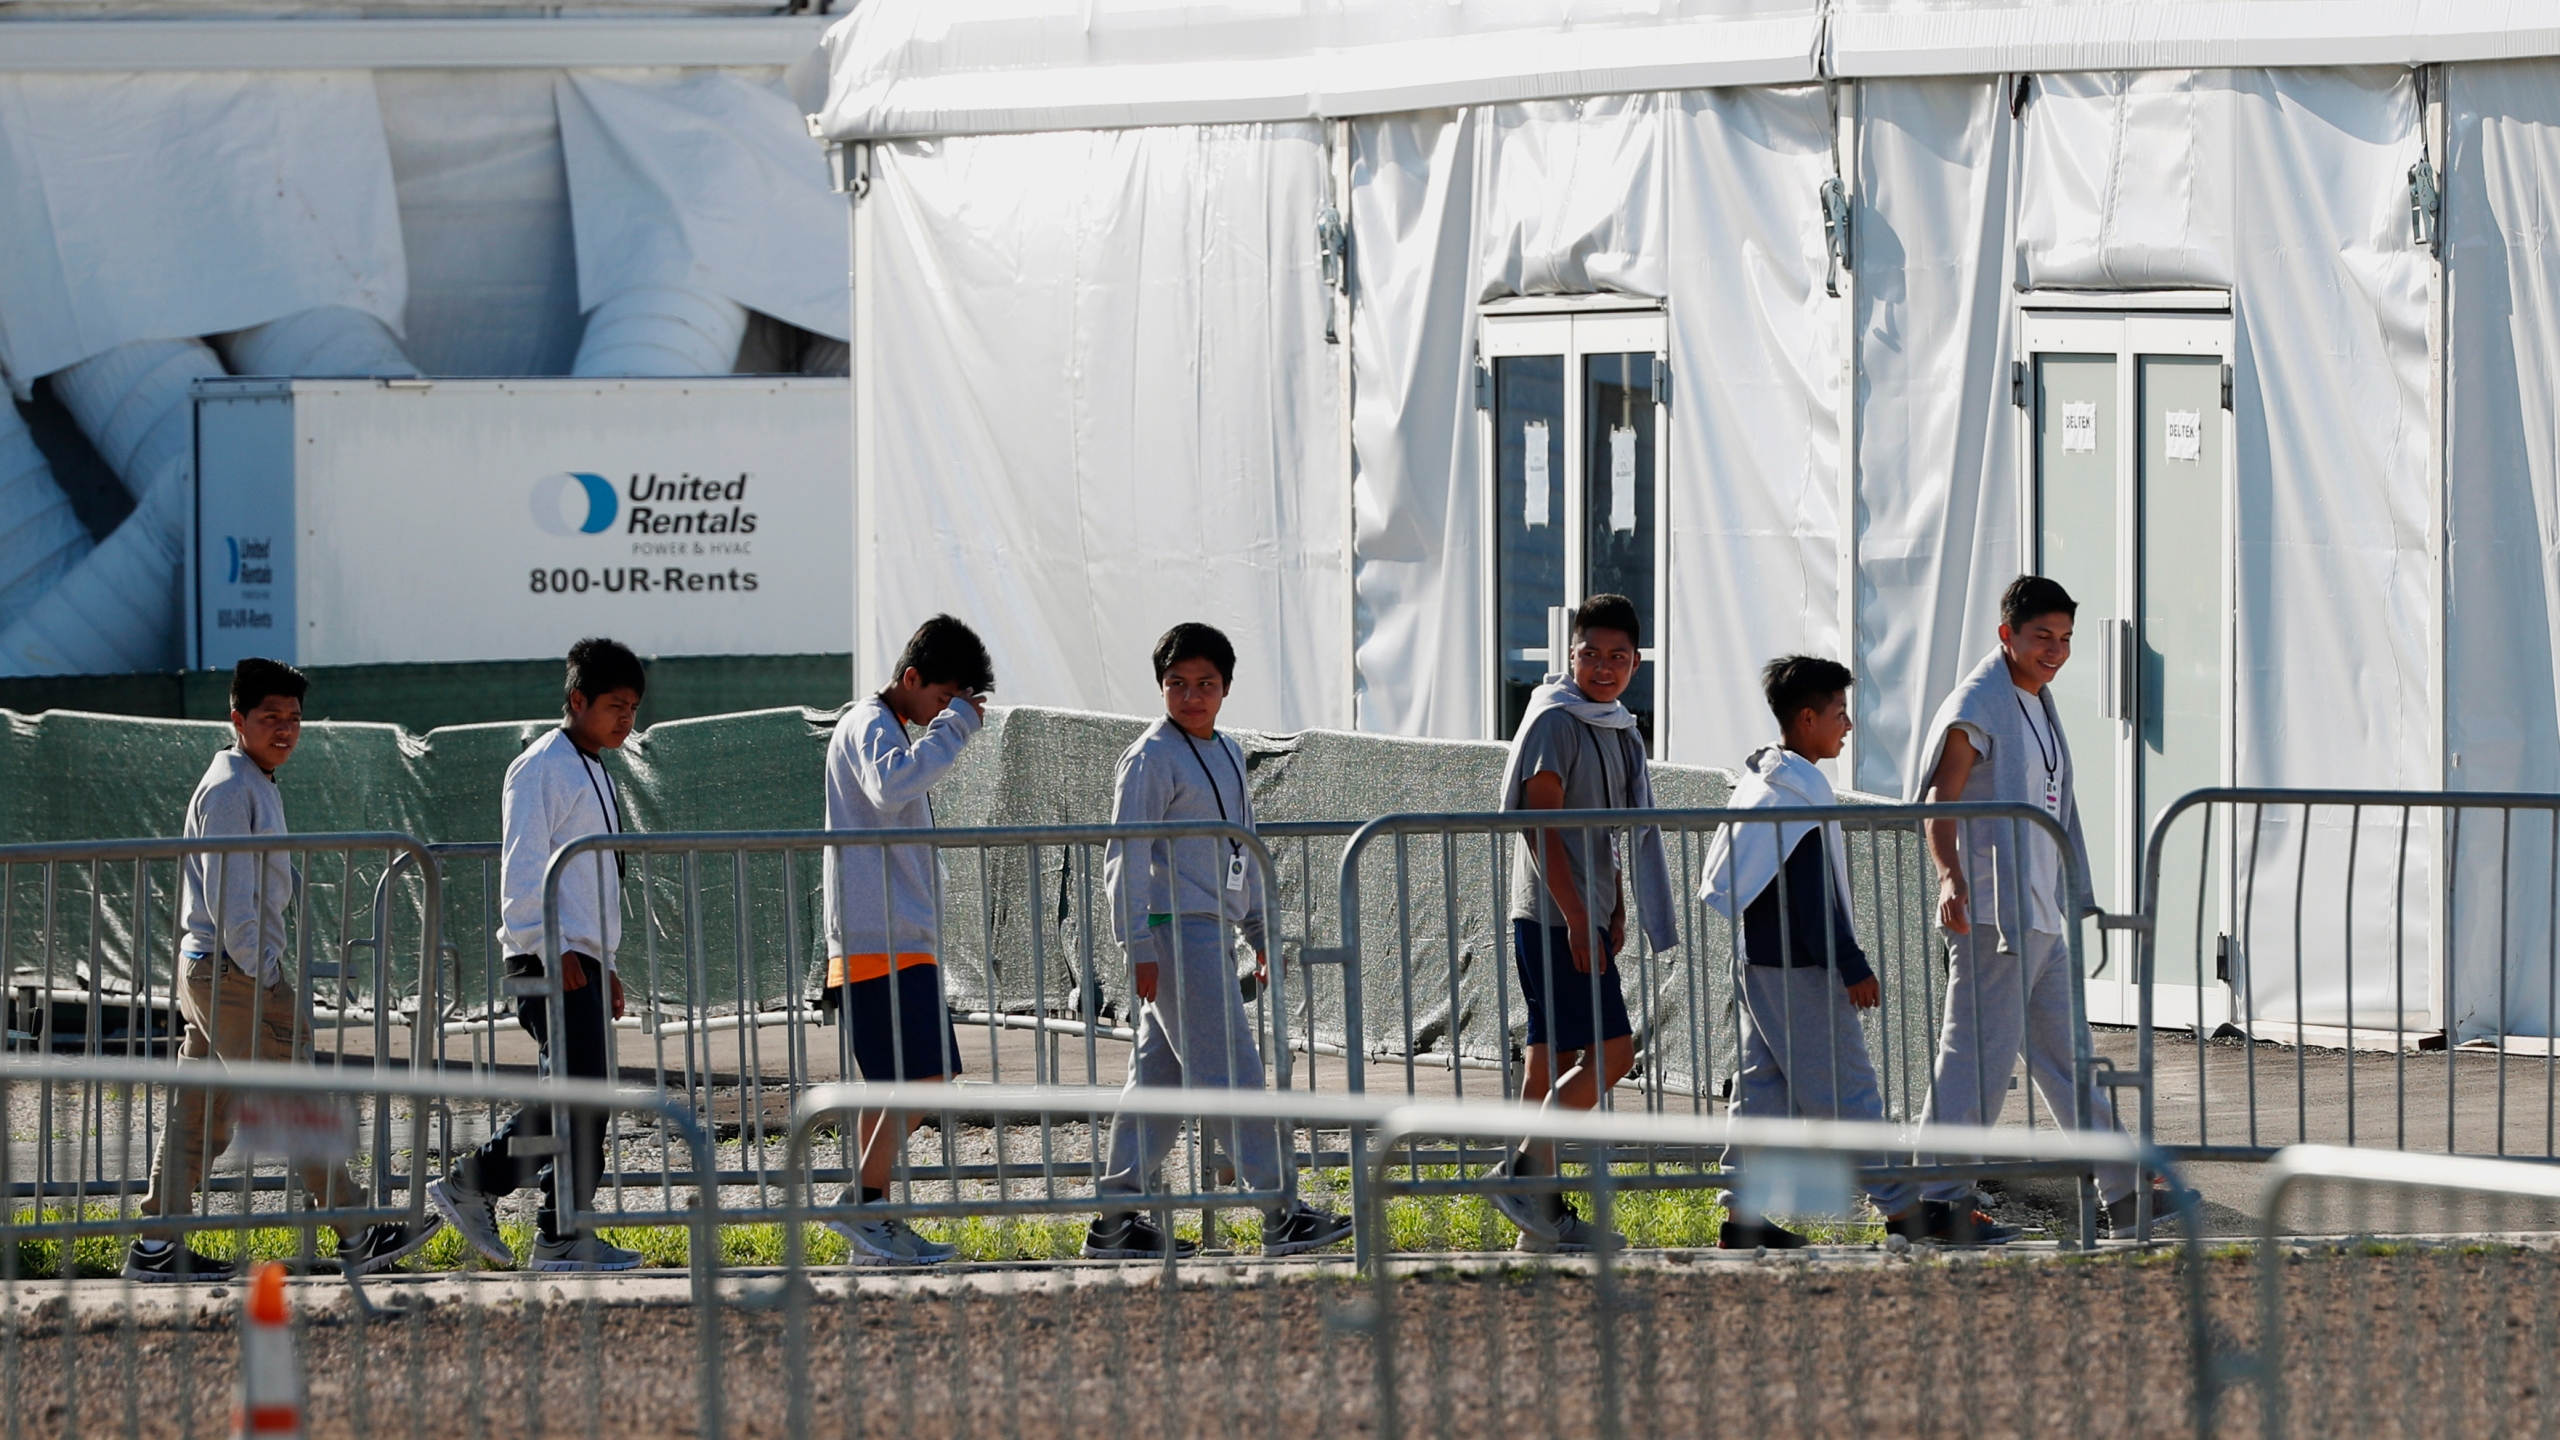 Immigrant_Children-Detained_42242-159532.jpg66398597